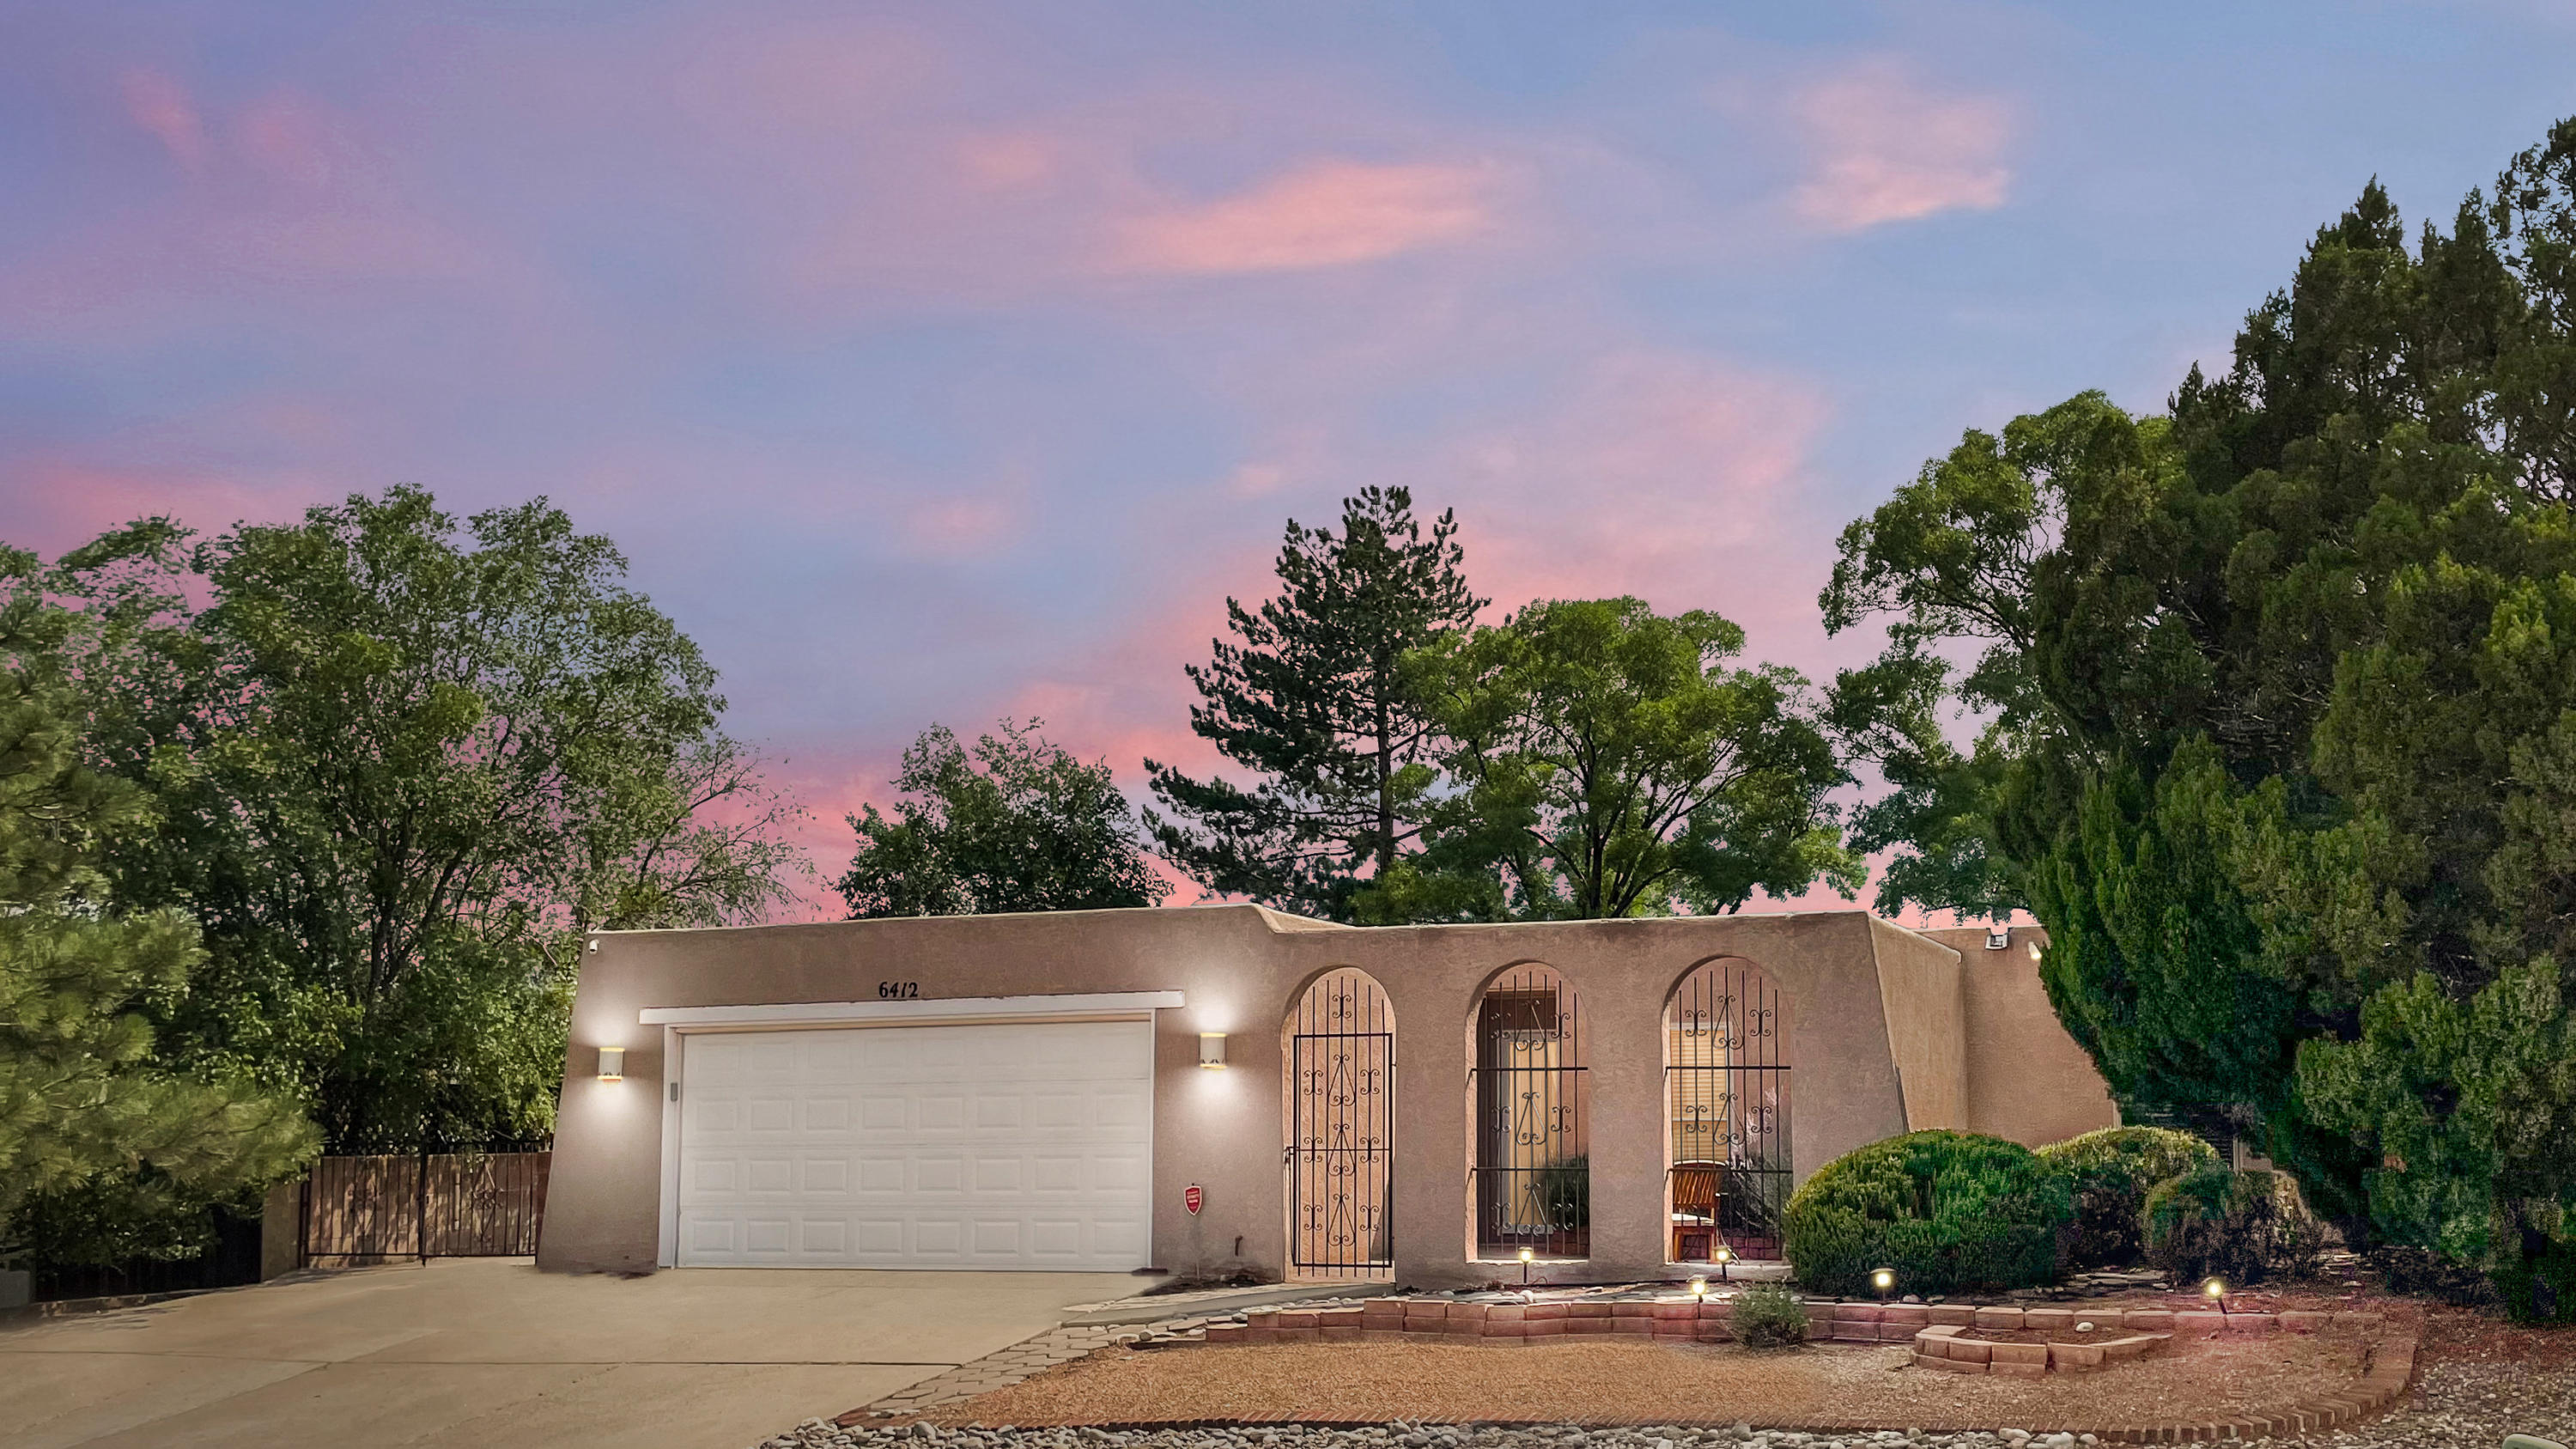 Great opportunity to have a wonderfully maintained home in Academy Hills. This house is fresh inside, with new carpeting and updated kitchen, and refrigerated AC!  Extremely convenient to all that is wonderful about this corner of Albuquerque. Don't miss out!